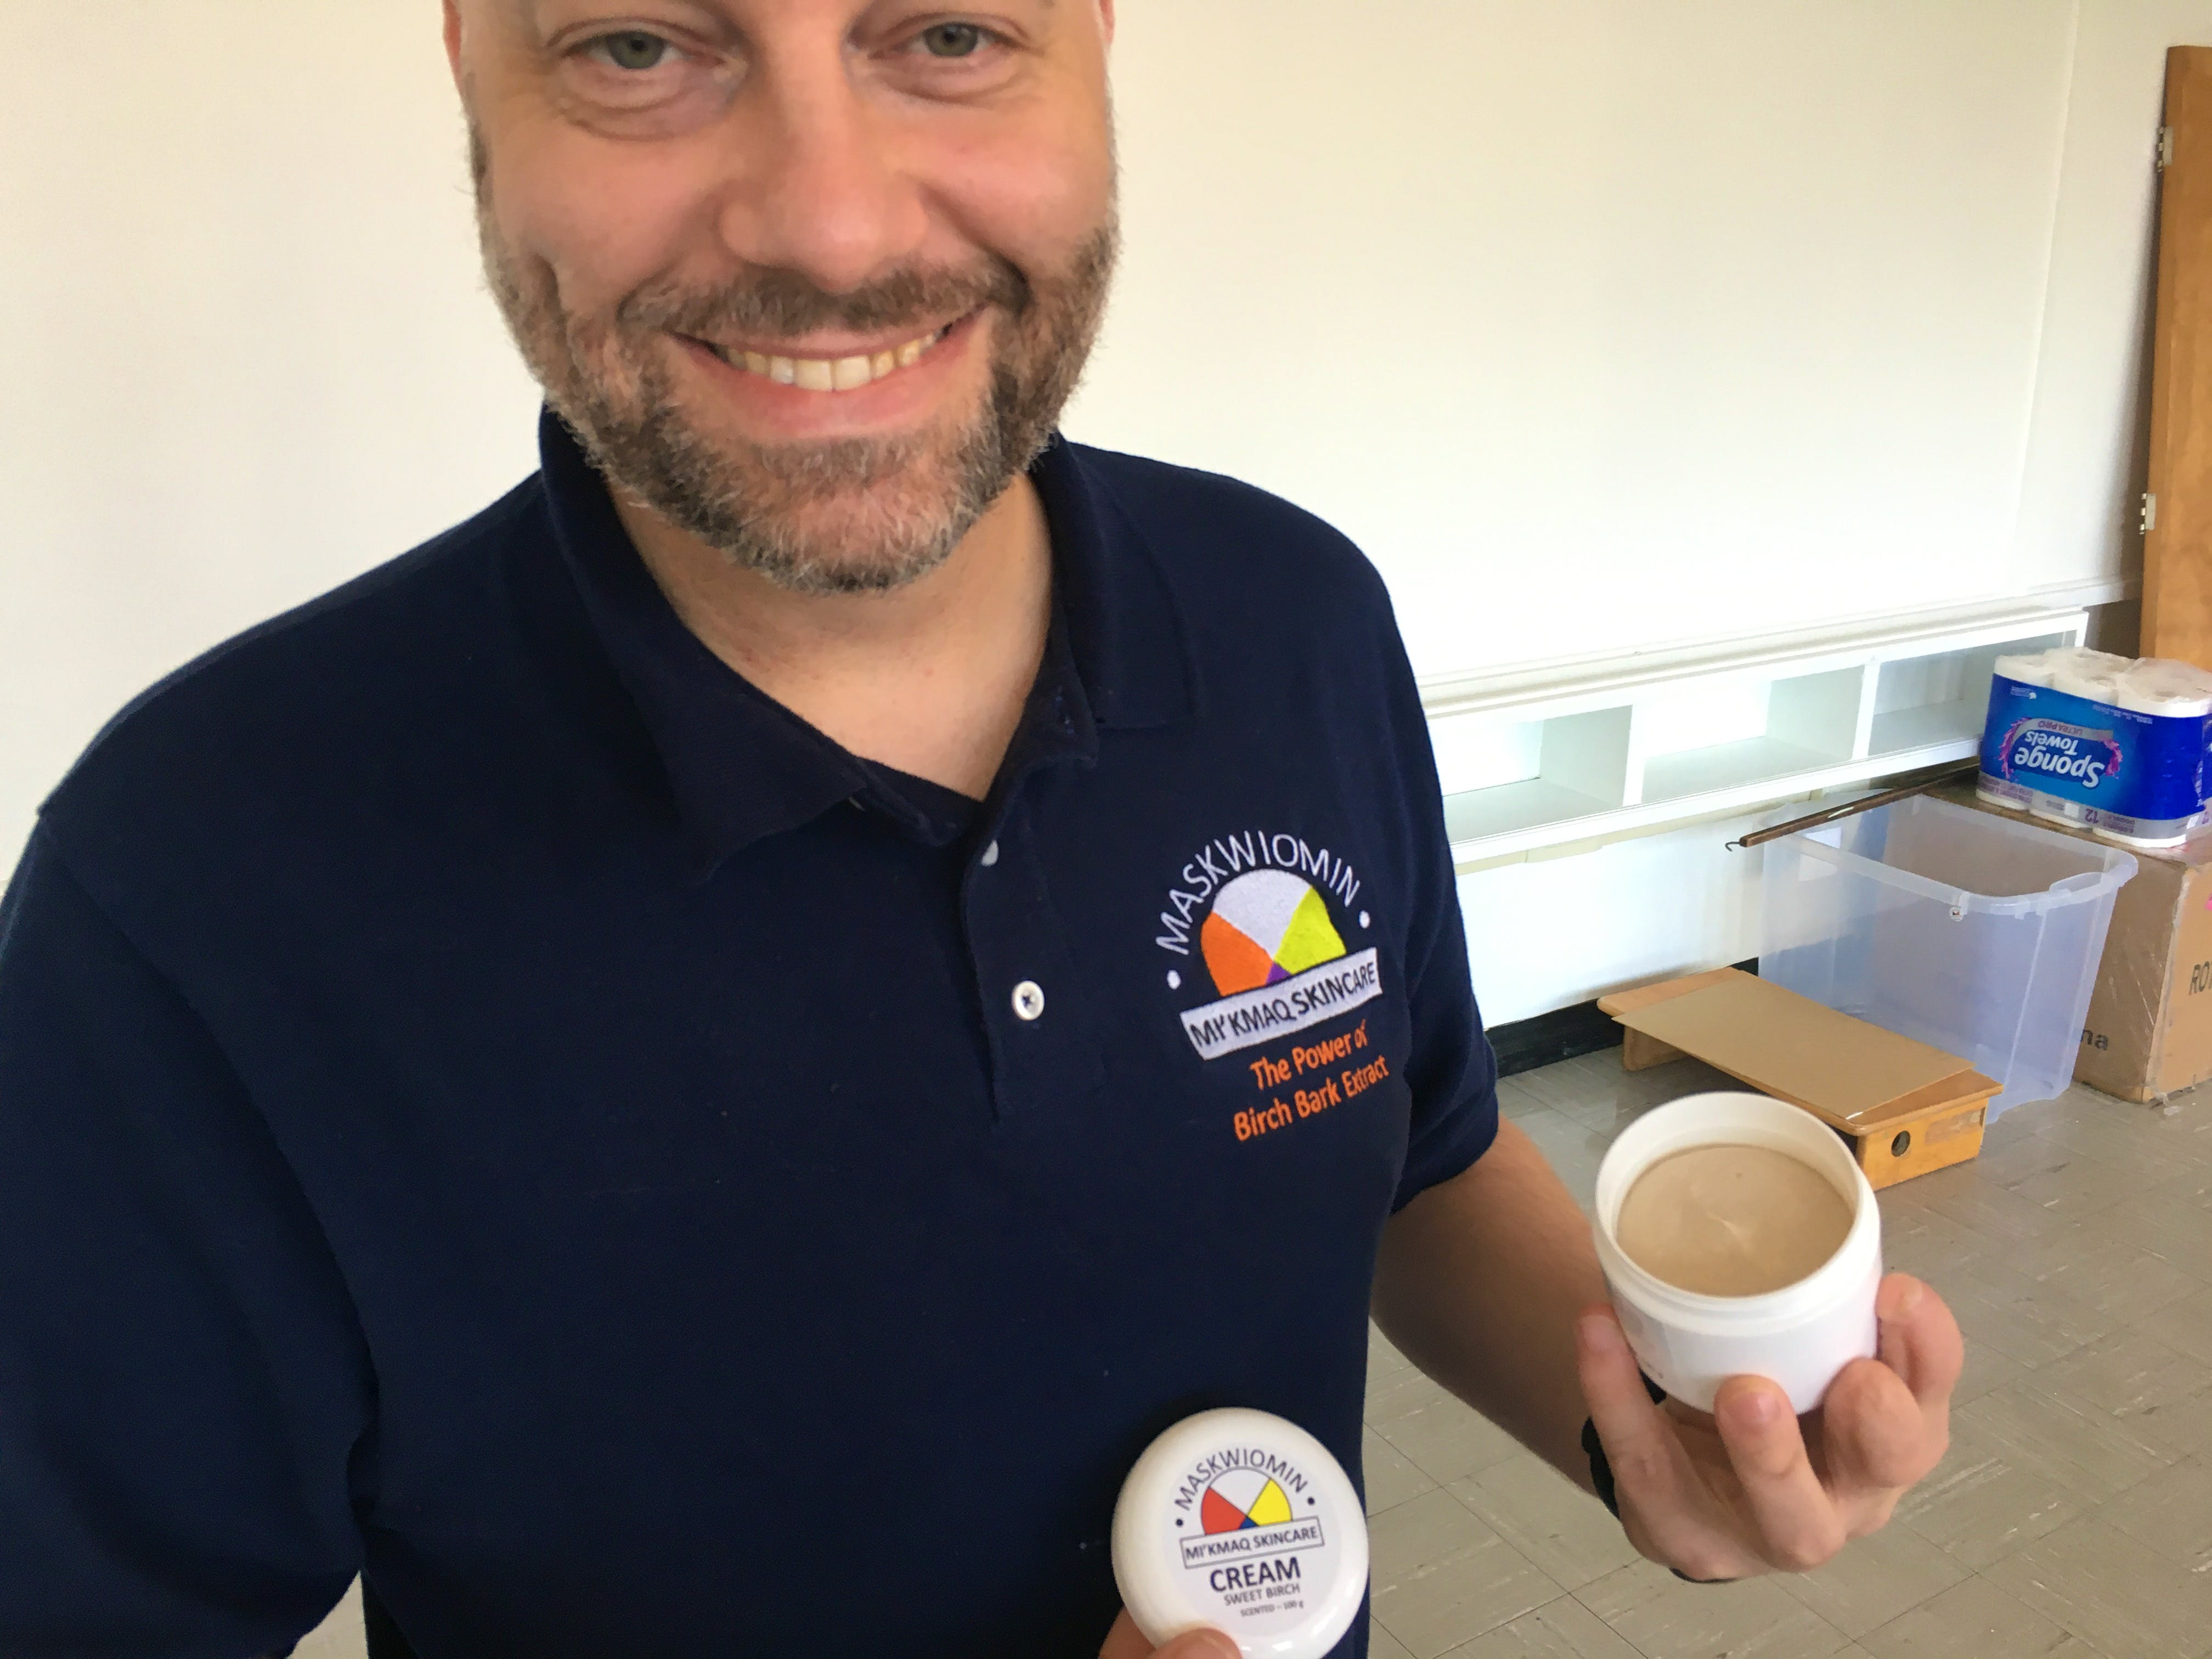 Matthias Bierenstiel shows off the cream he and business partner, Tuma Young, are selling under the name Maskwiomin. ARDELLE REYNOLDS/CAPE BRETON POST